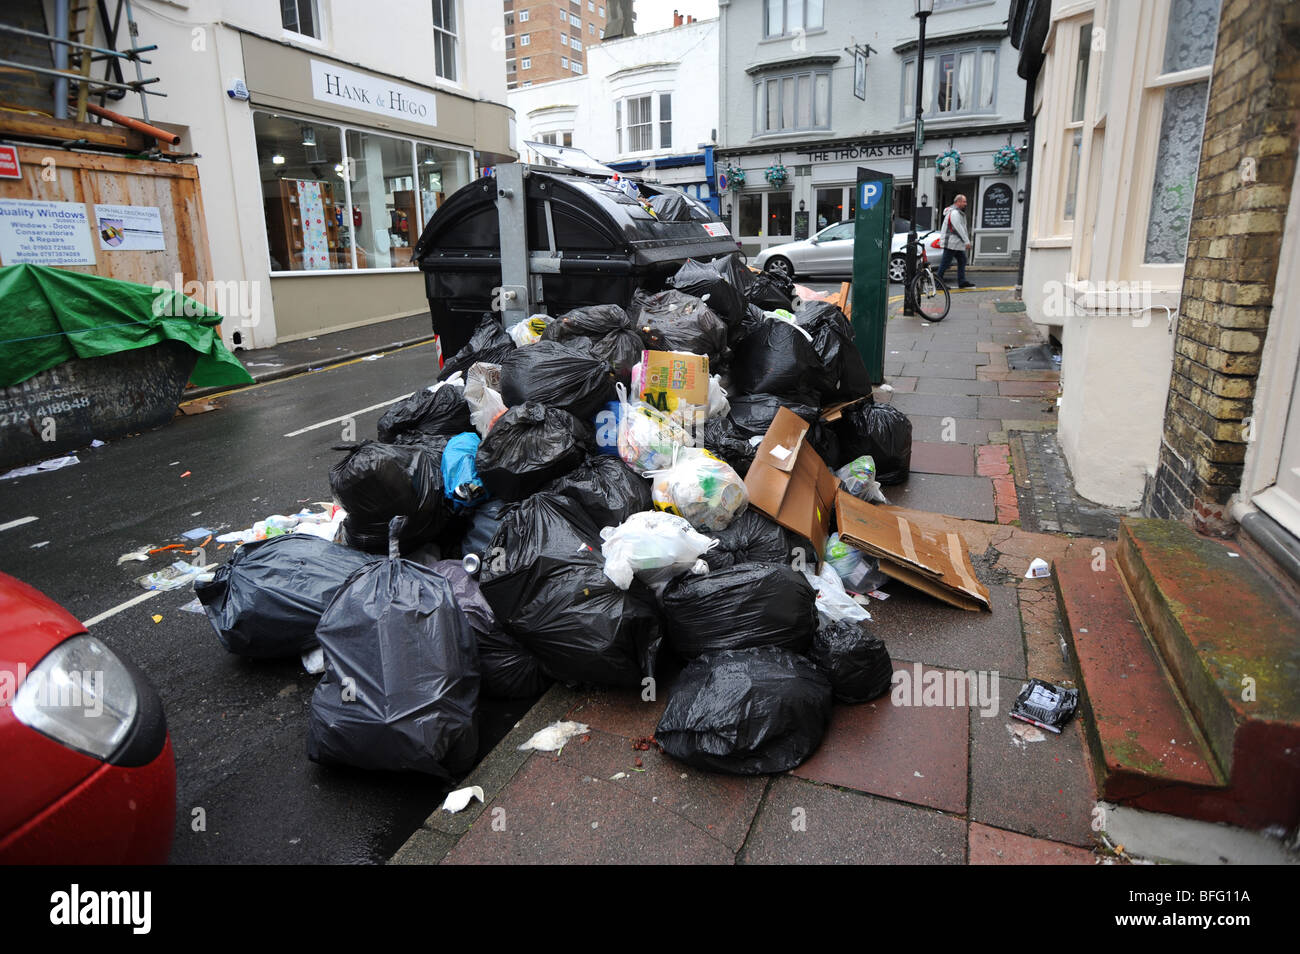 Overflowing communal bins in brighton after a strike by refuse workers about pay - Stock Image